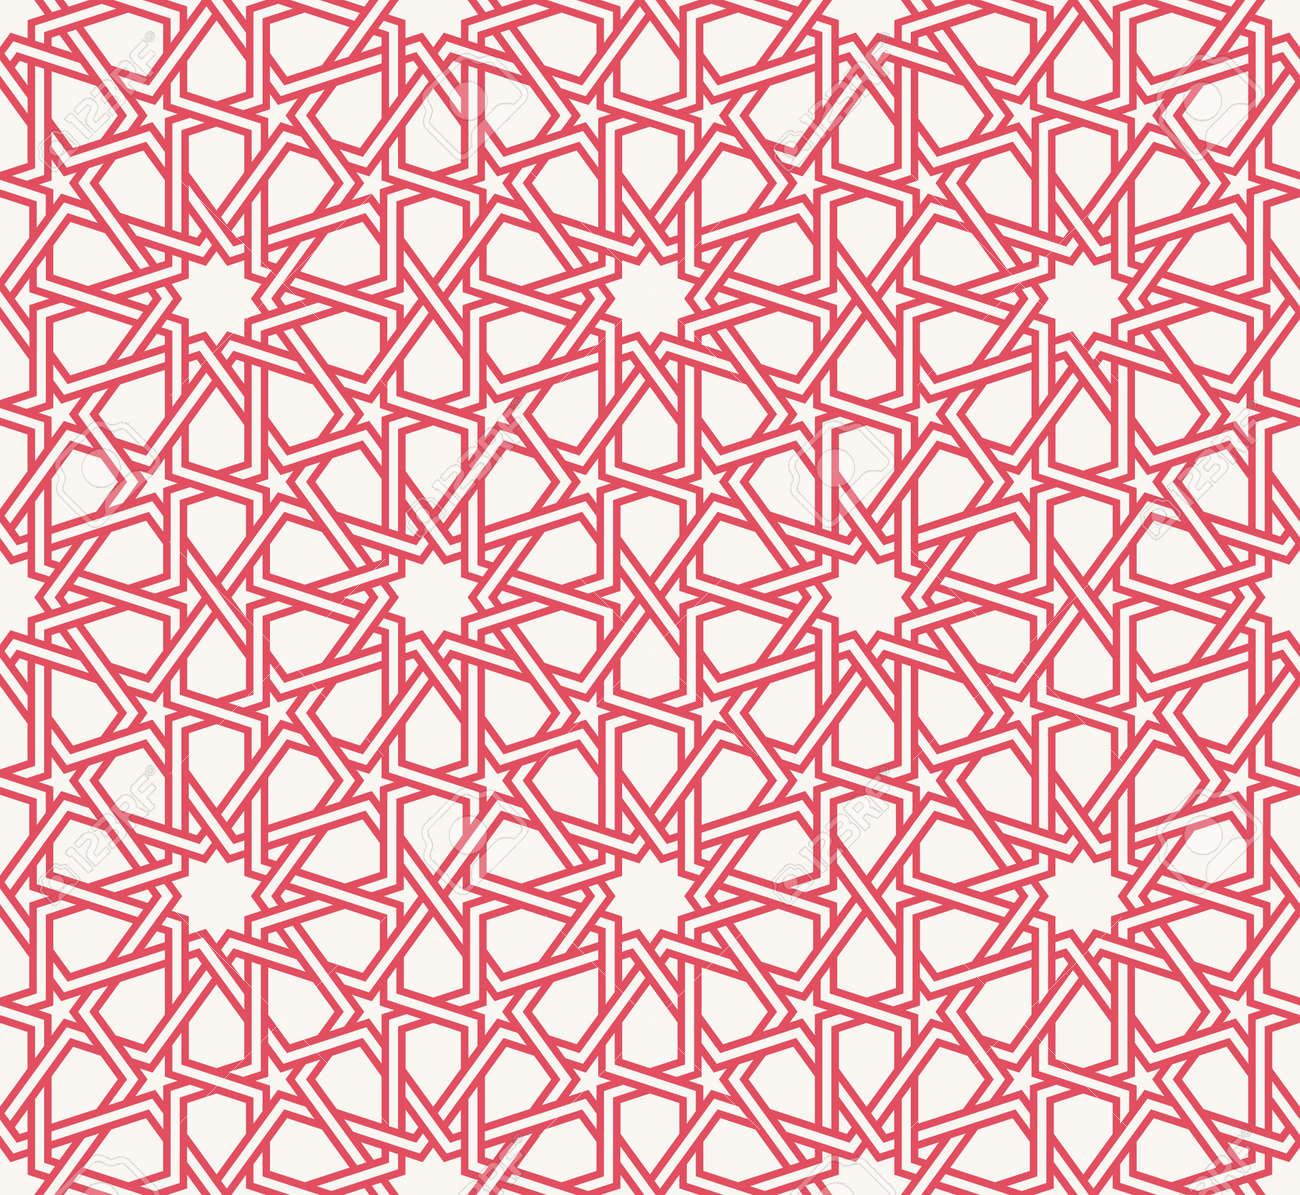 Entwined Modern Pattern, Based On Traditional Oriental Arabic ... for Modern Arabic Pattern Vector  53kxo